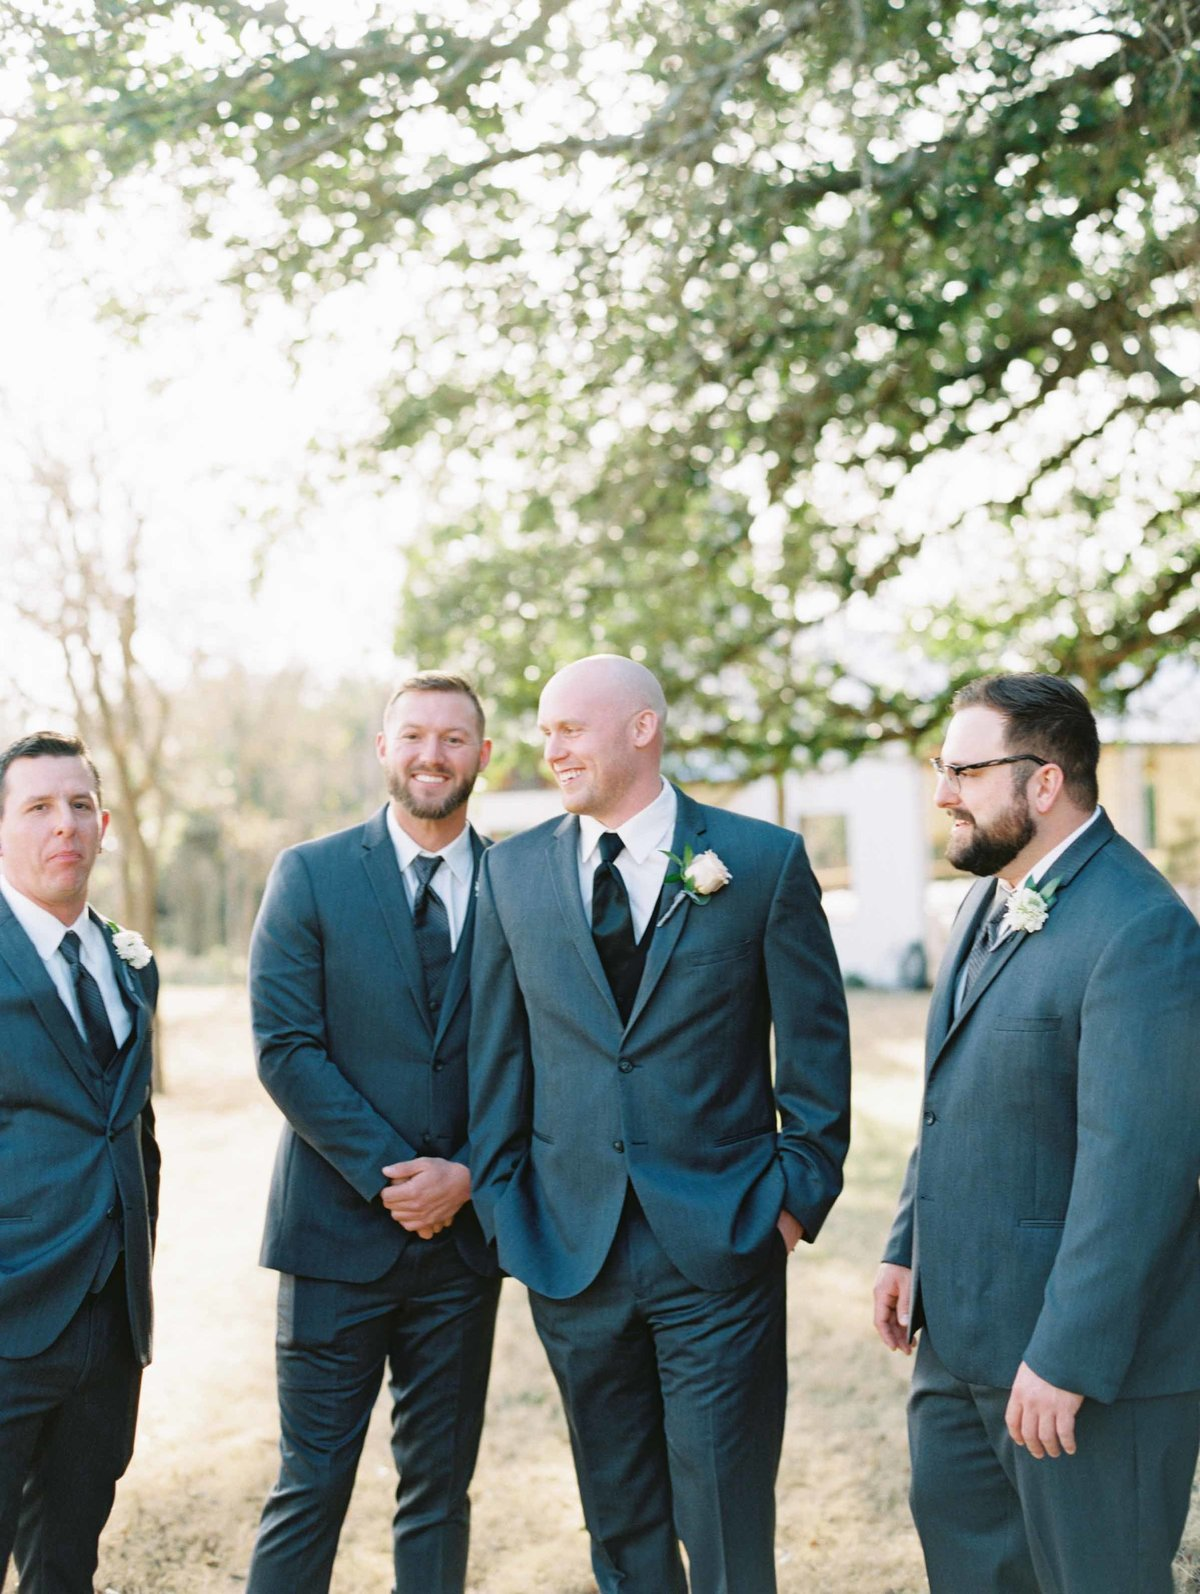 Angel_owens_photography_wedding43